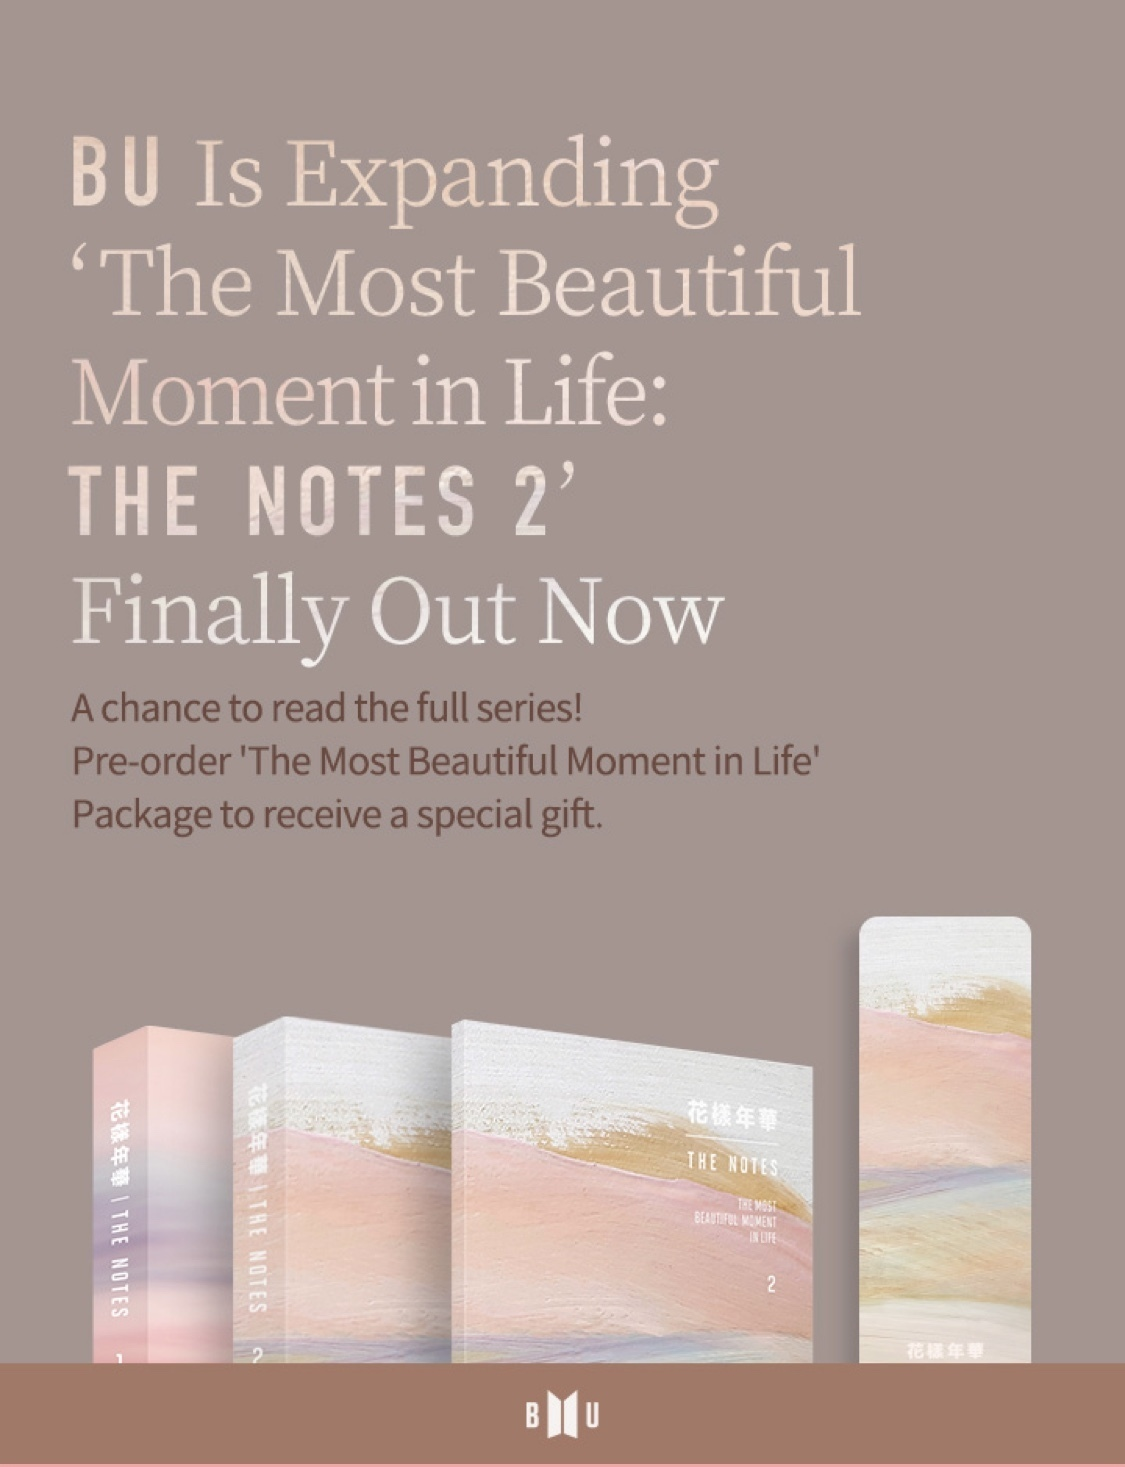 BTS The Notes 2 Packaged (Official Weverse) - Goyangi ...